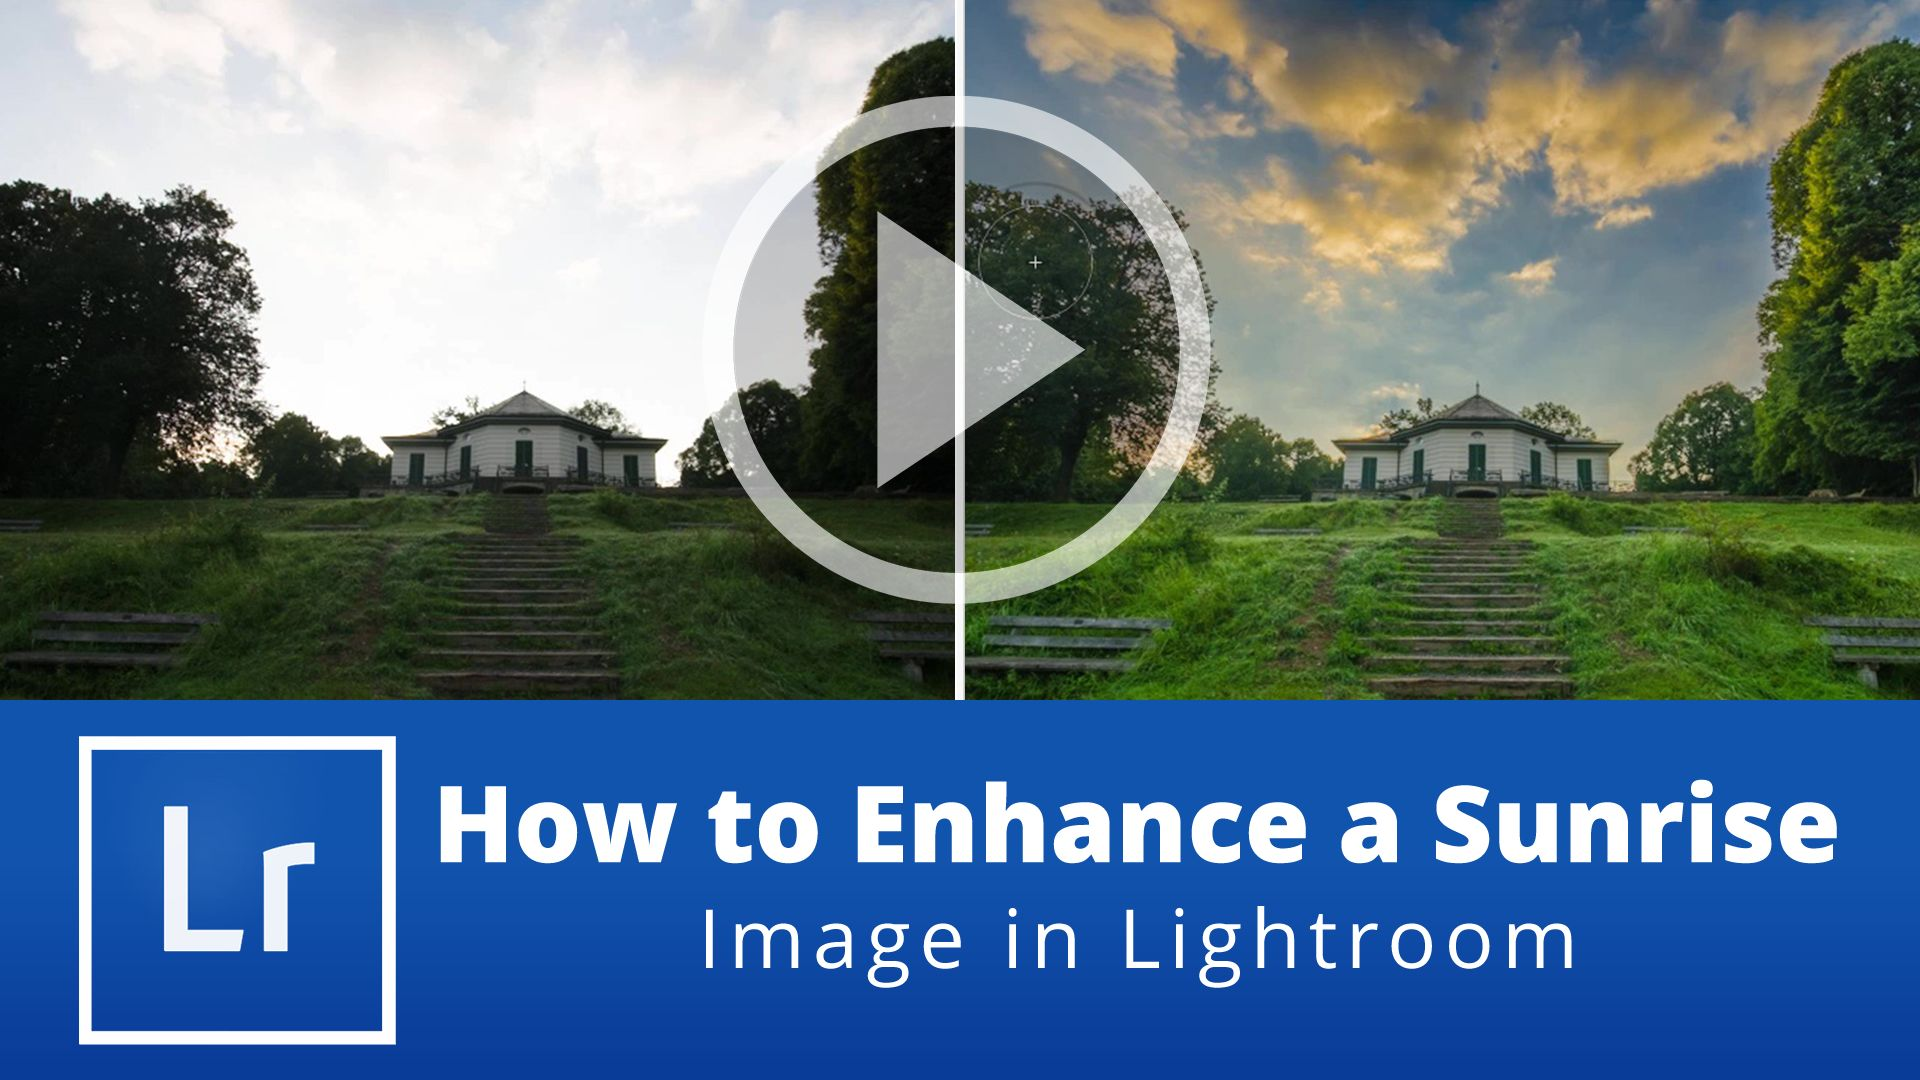 How to Enhance a Sunrise Image in Lightroom